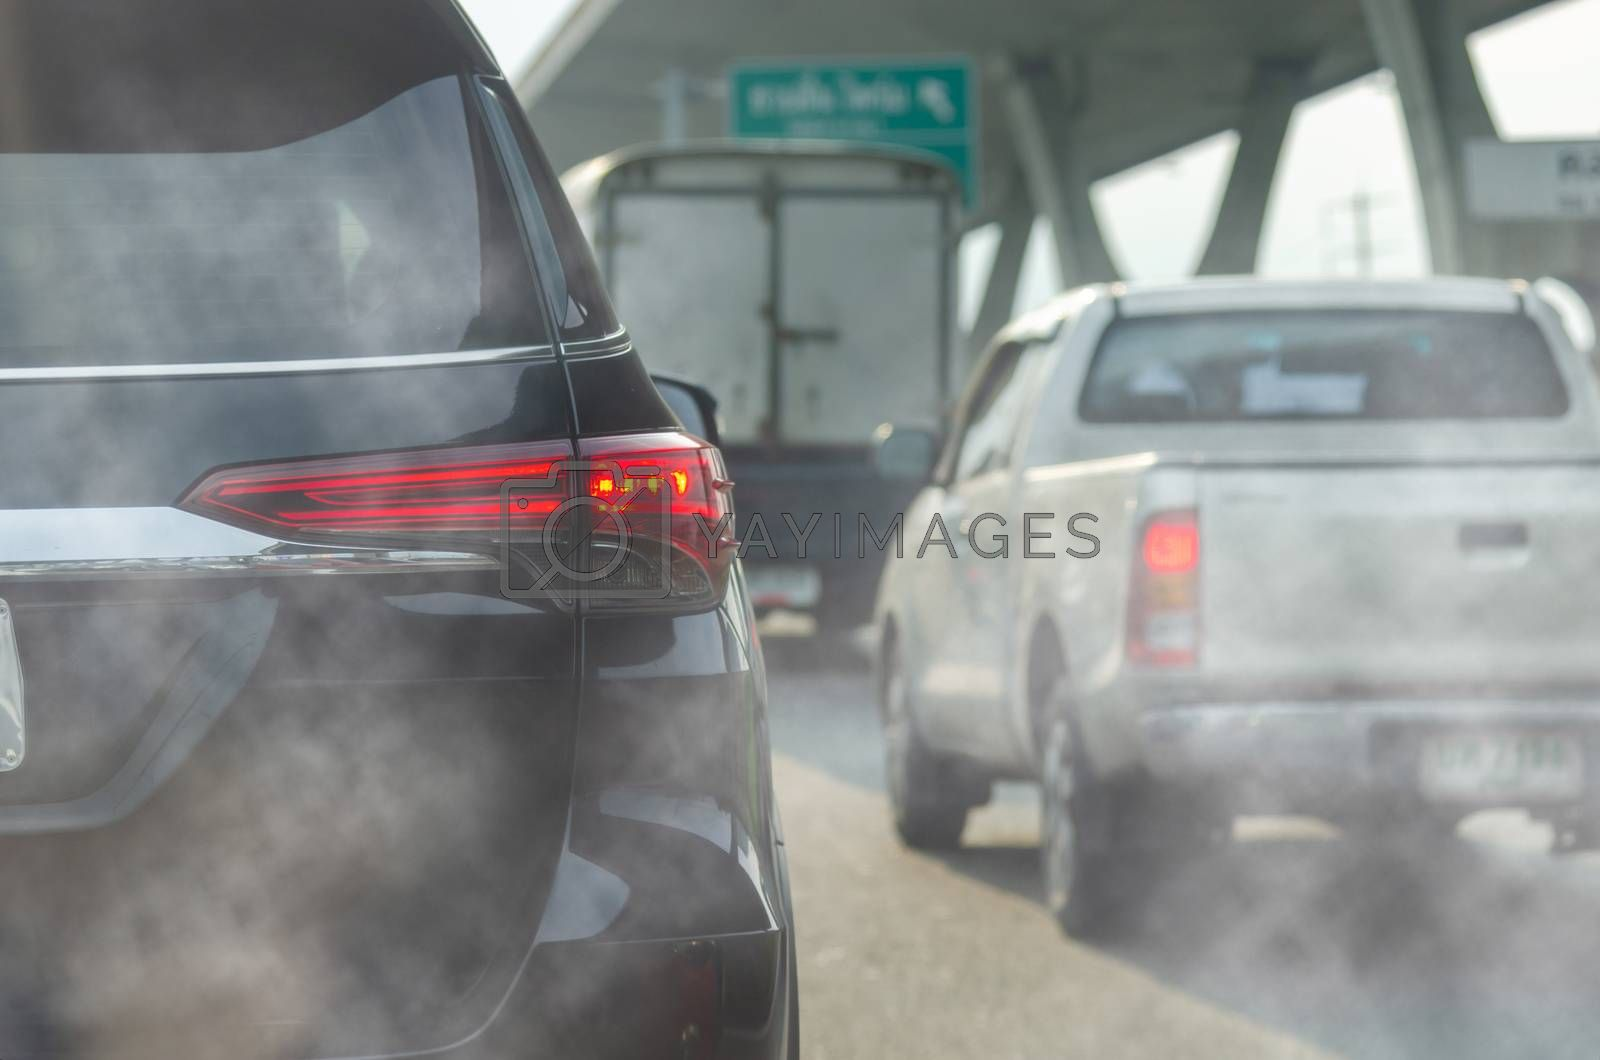 Pollution from vehicle exhaust in the city. Traffic jam on the road